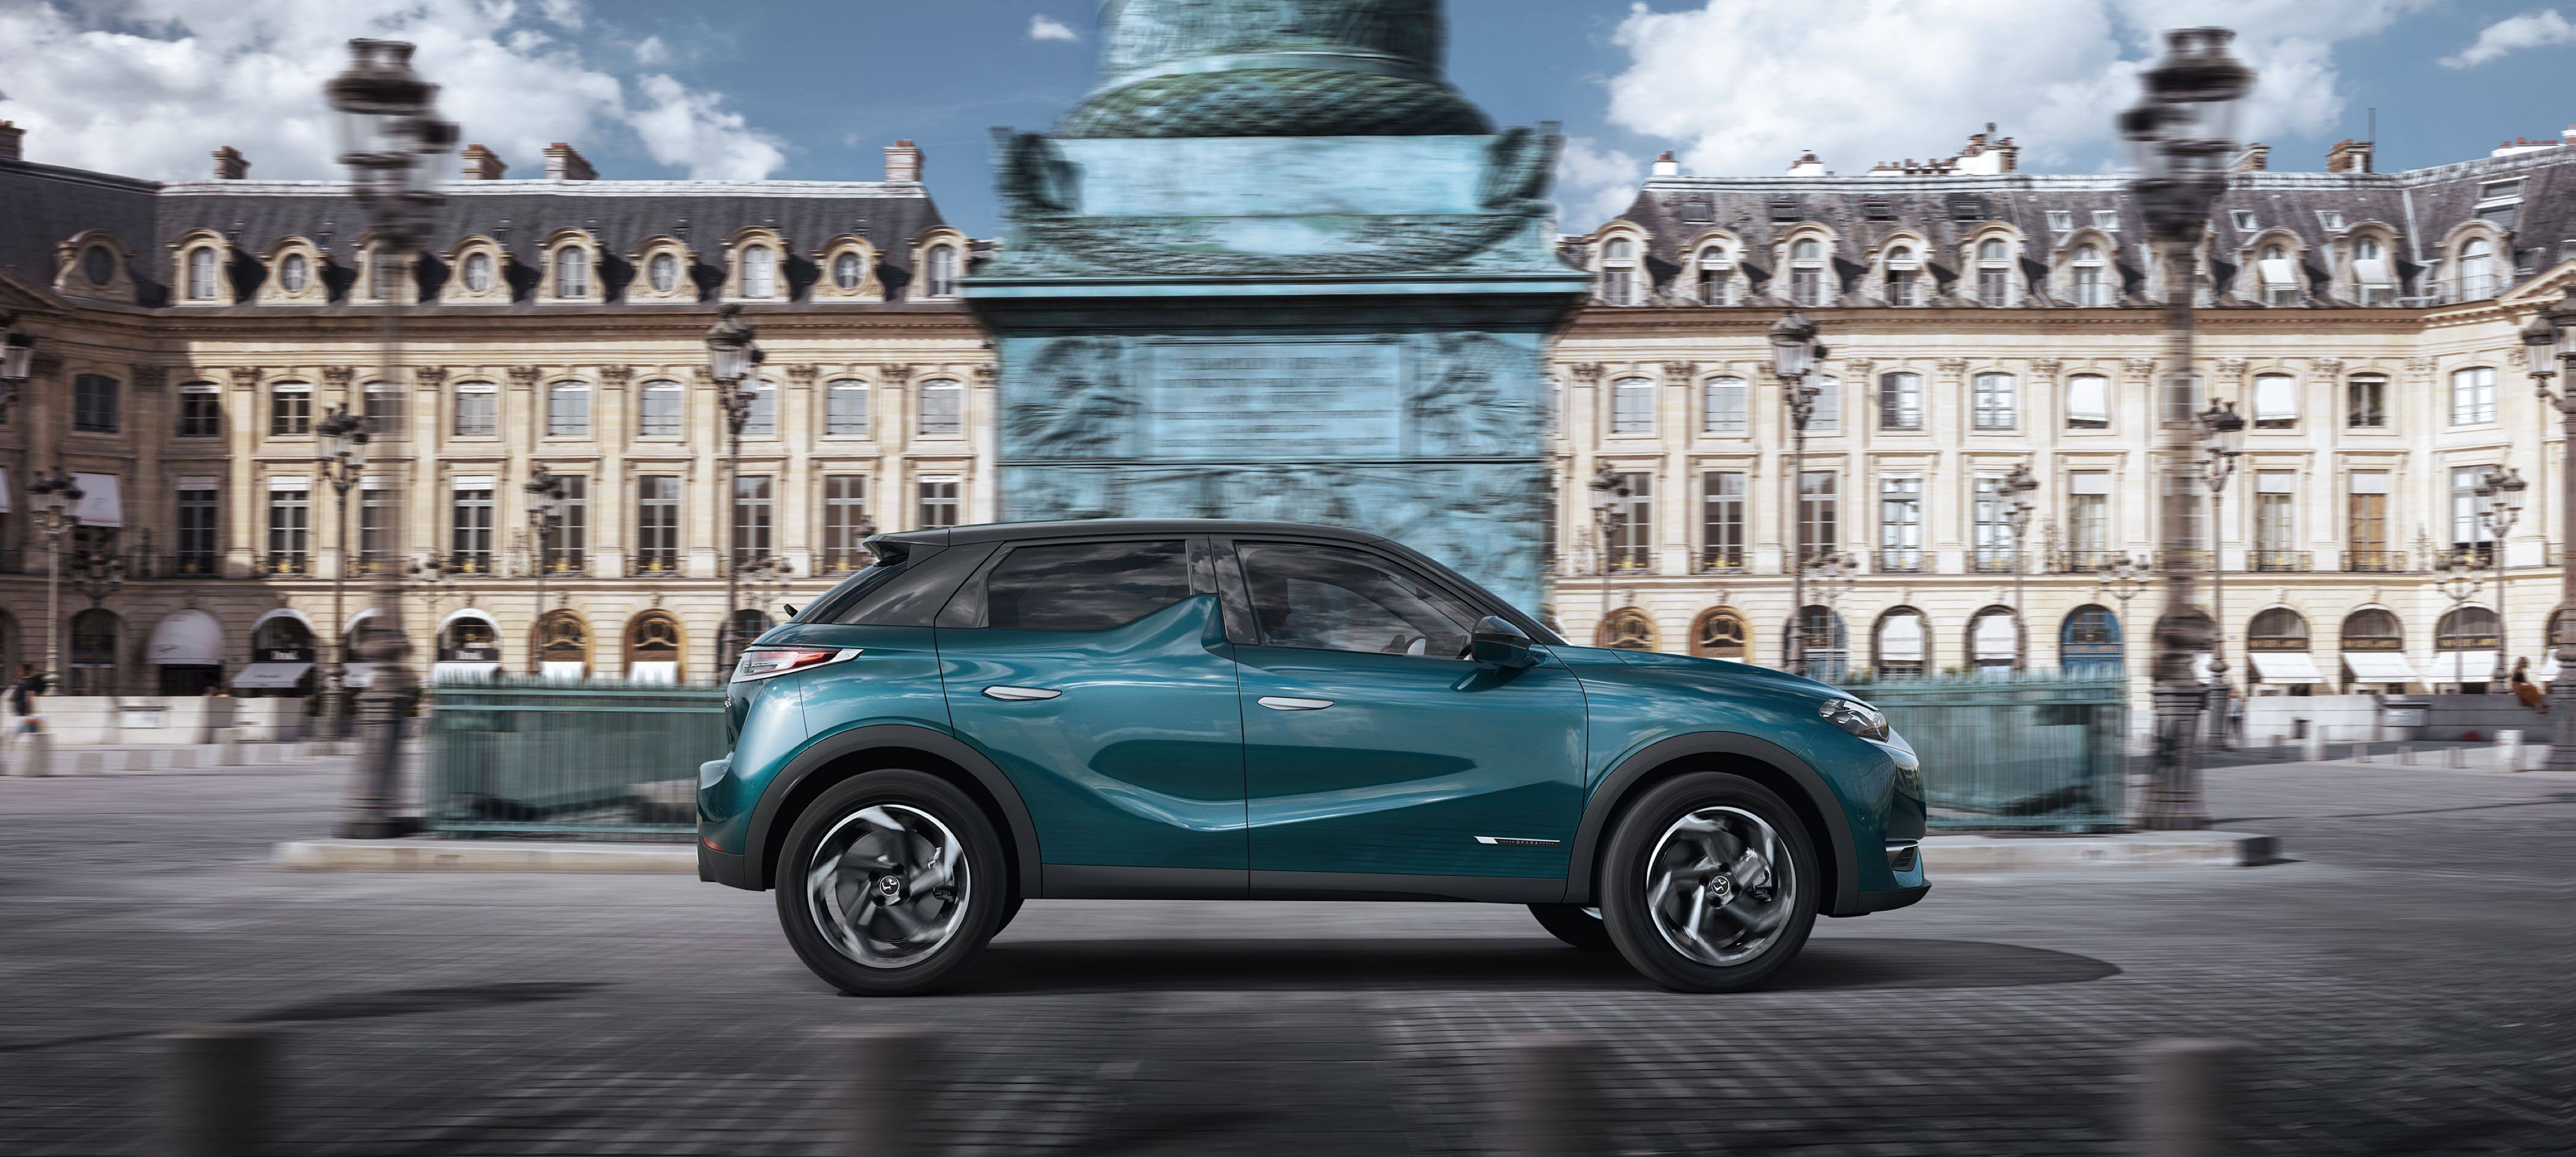 2019 citroen ds3 crossback e tense review gtspirit. Black Bedroom Furniture Sets. Home Design Ideas